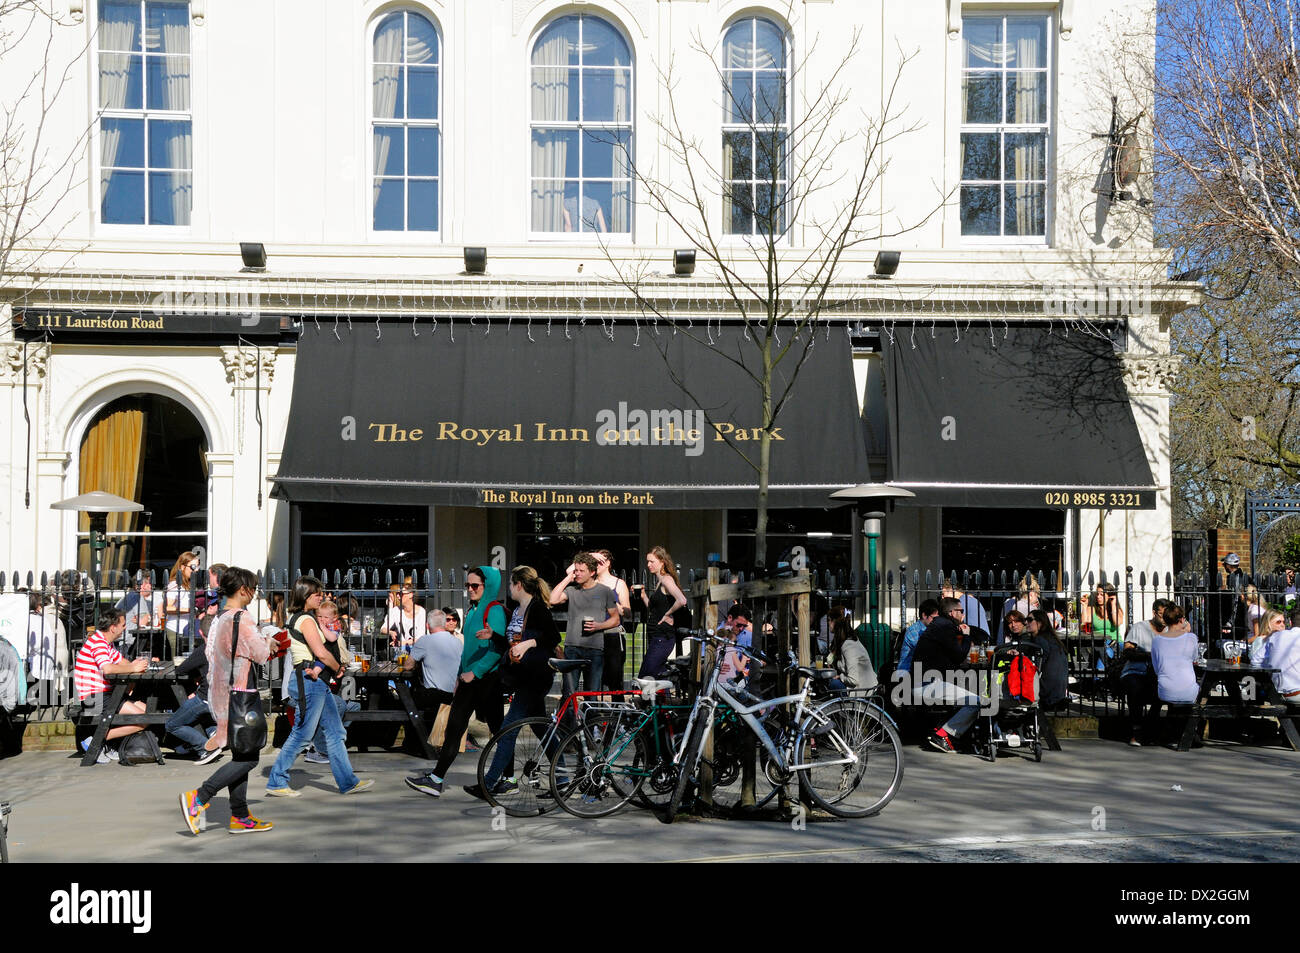 People outside The Royal Inn on the Park on a warm day, London Borough of Hackney, England UK - Stock Image